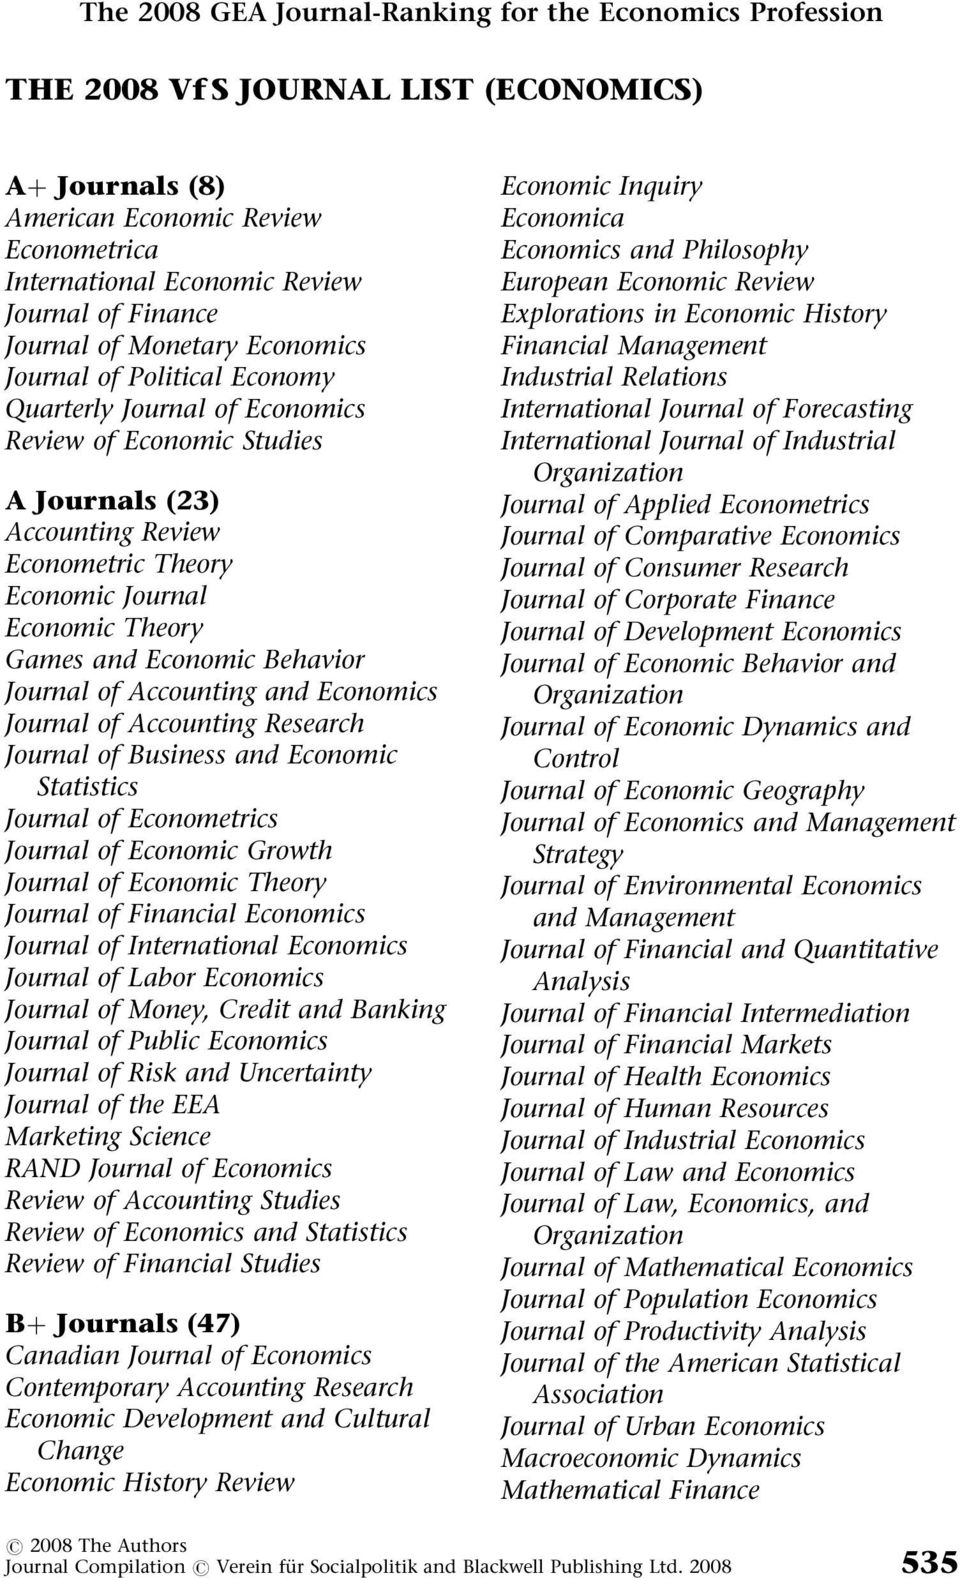 Behavior Journal of Accounting and Journal of Accounting Research Journal of Business and Economic Statistics Journal of Econometrics Journal of Economic Growth Journal of Economic Theory Journal of